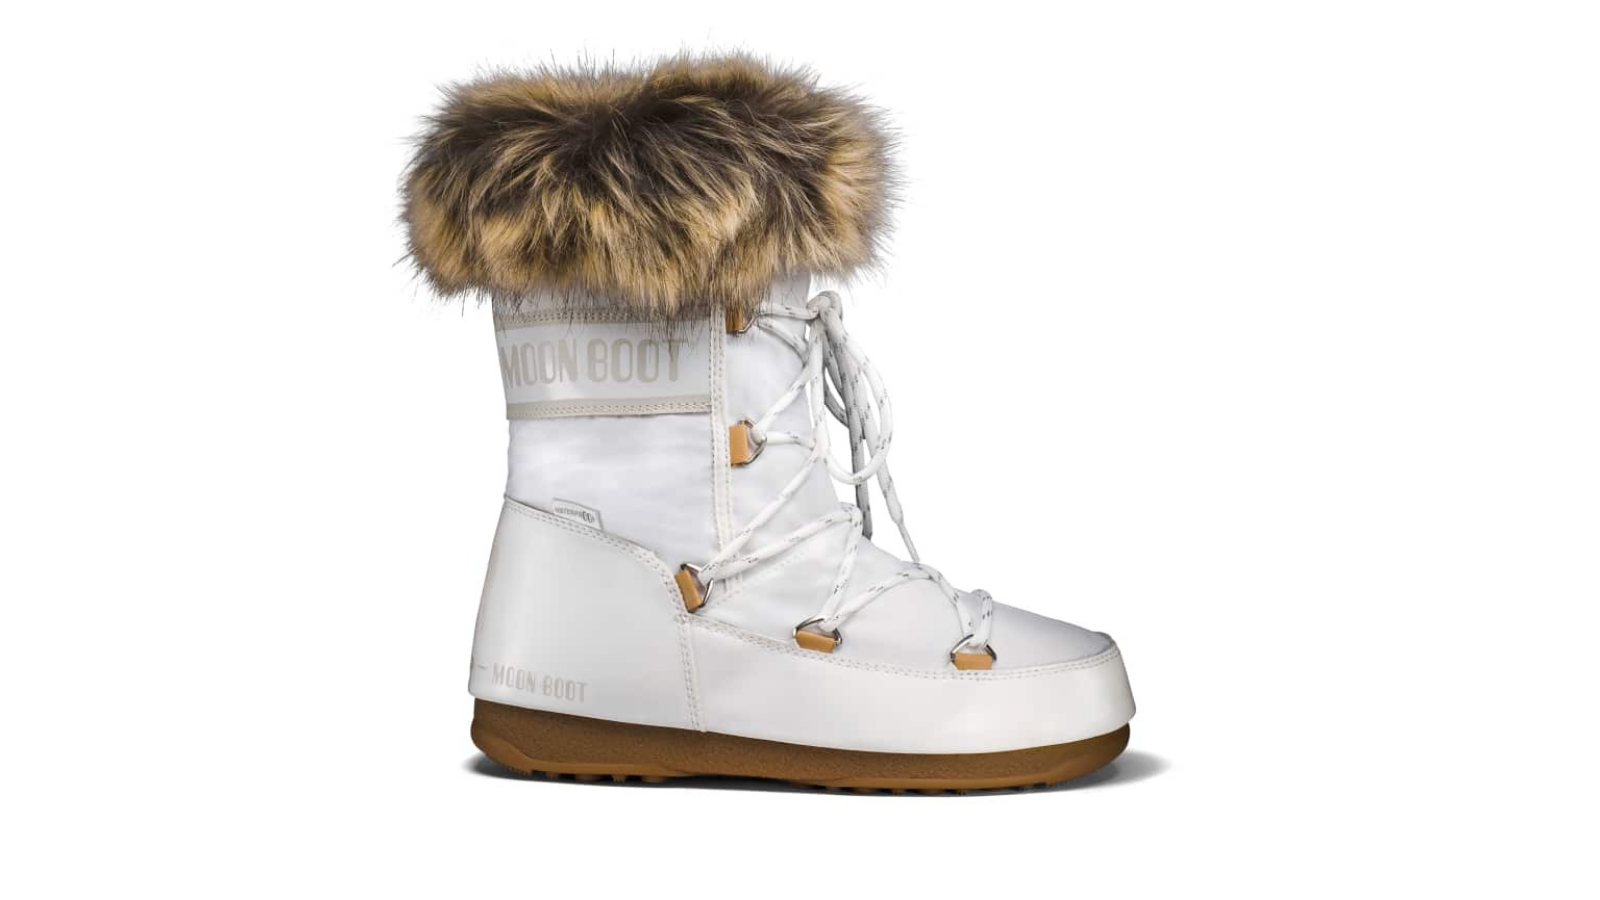 e1351503a096 Best snow boots  Waterproof and warm winter boots